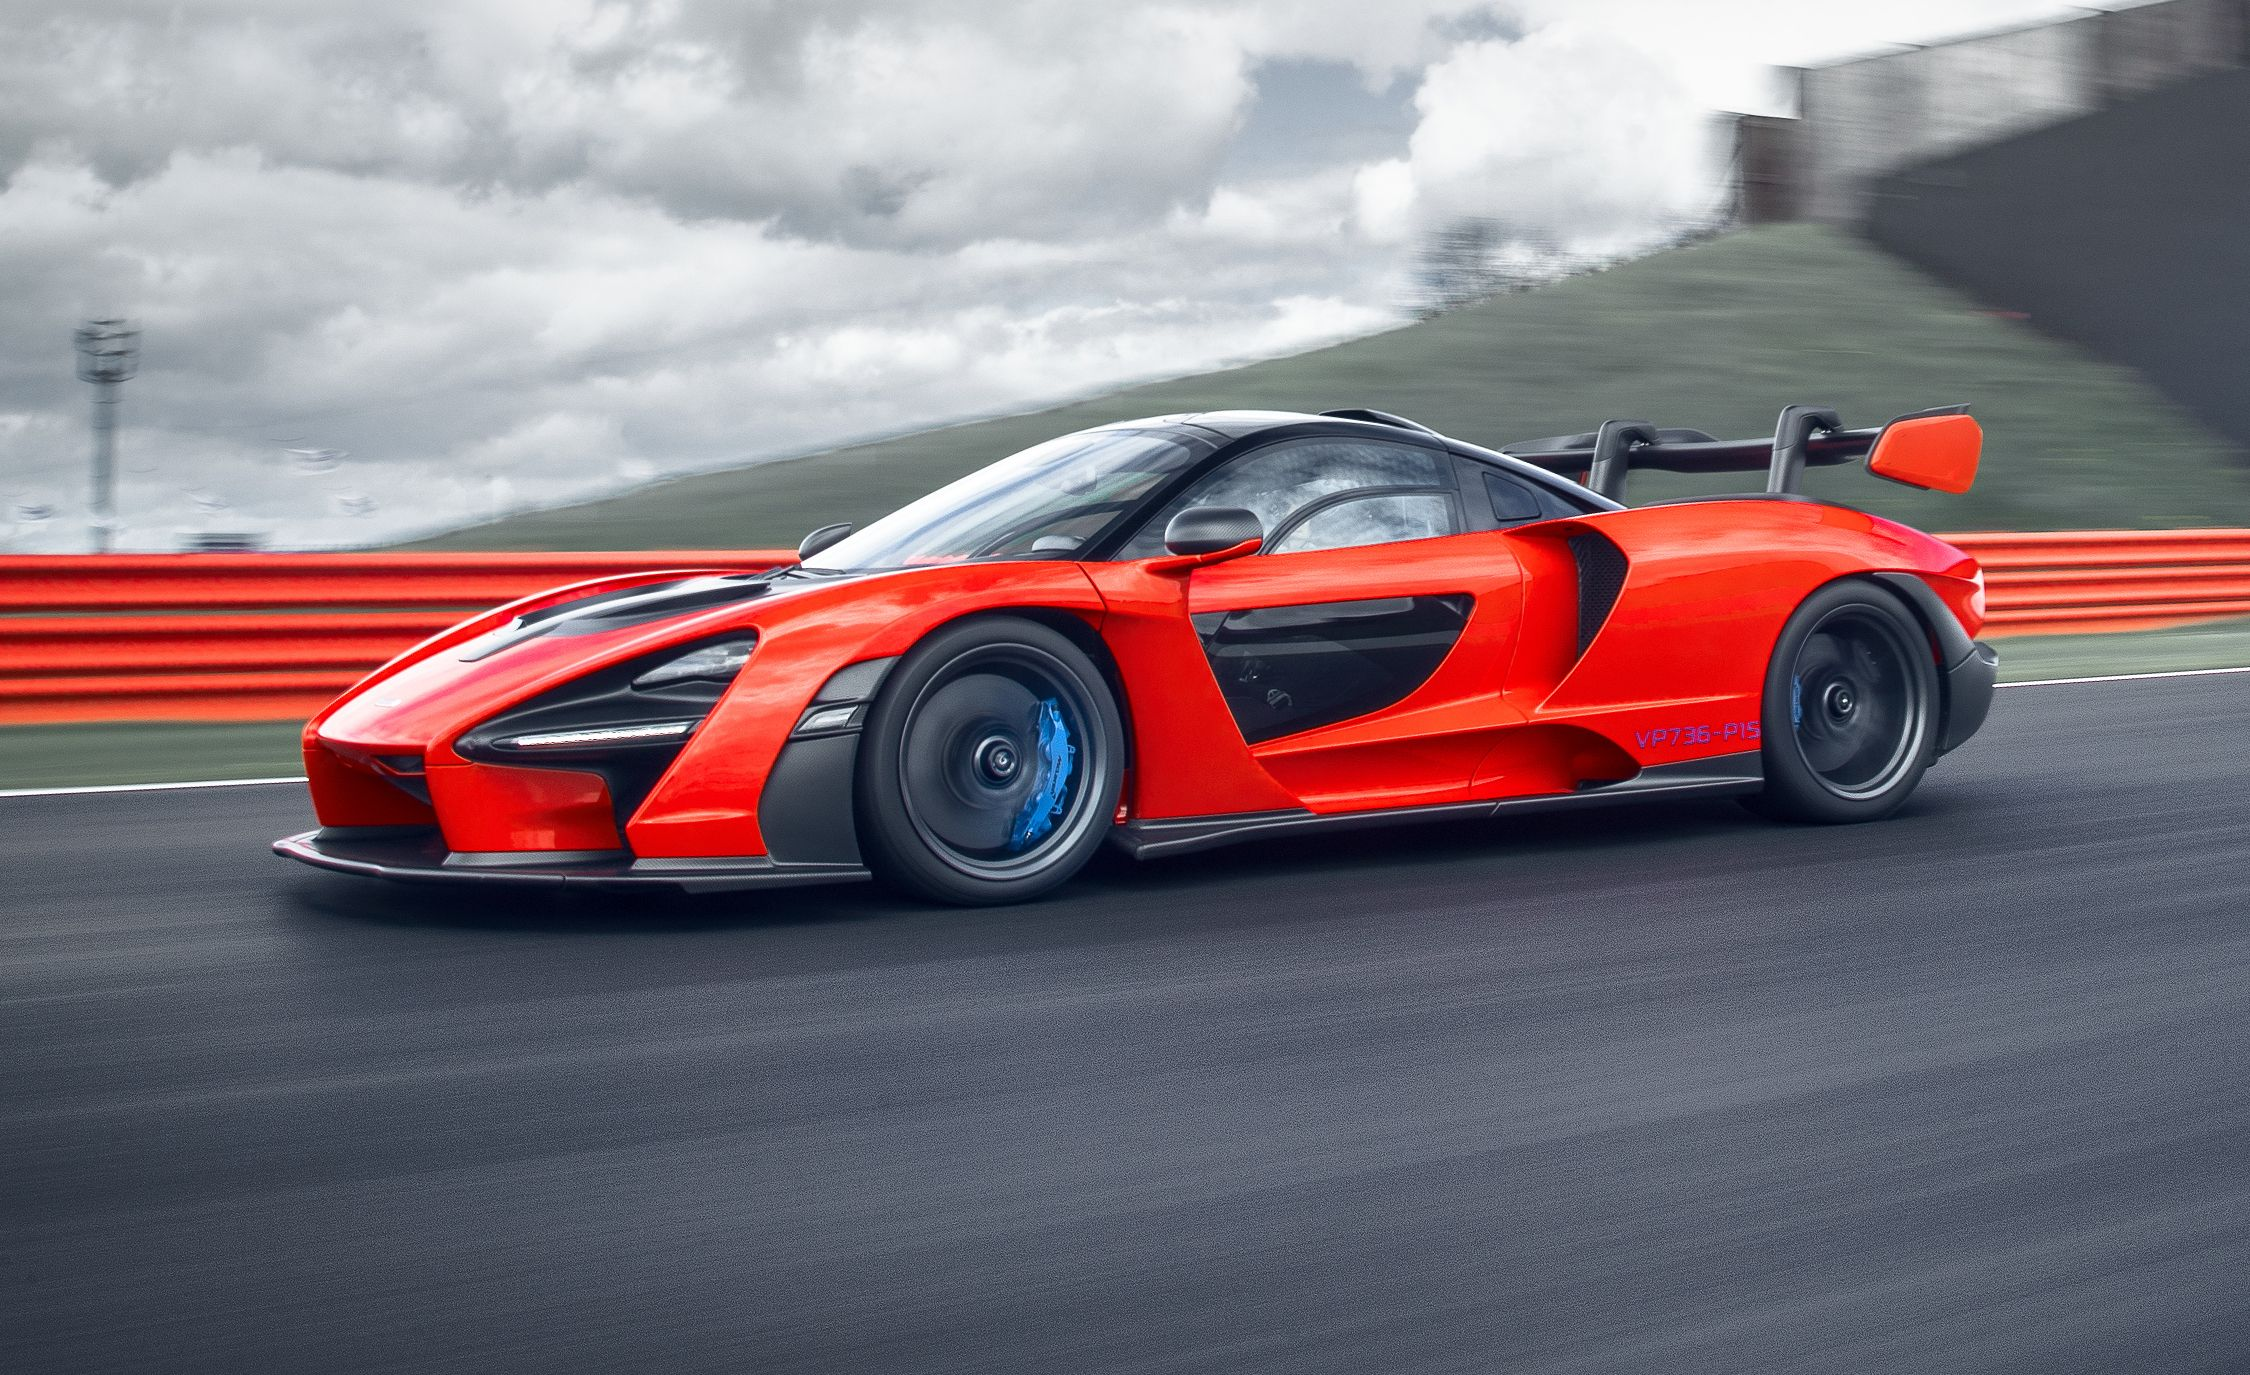 Mclaren Price 2017 >> 2019 McLaren Senna First Drive: May the Downforce Be with You | Review | Car and Driver